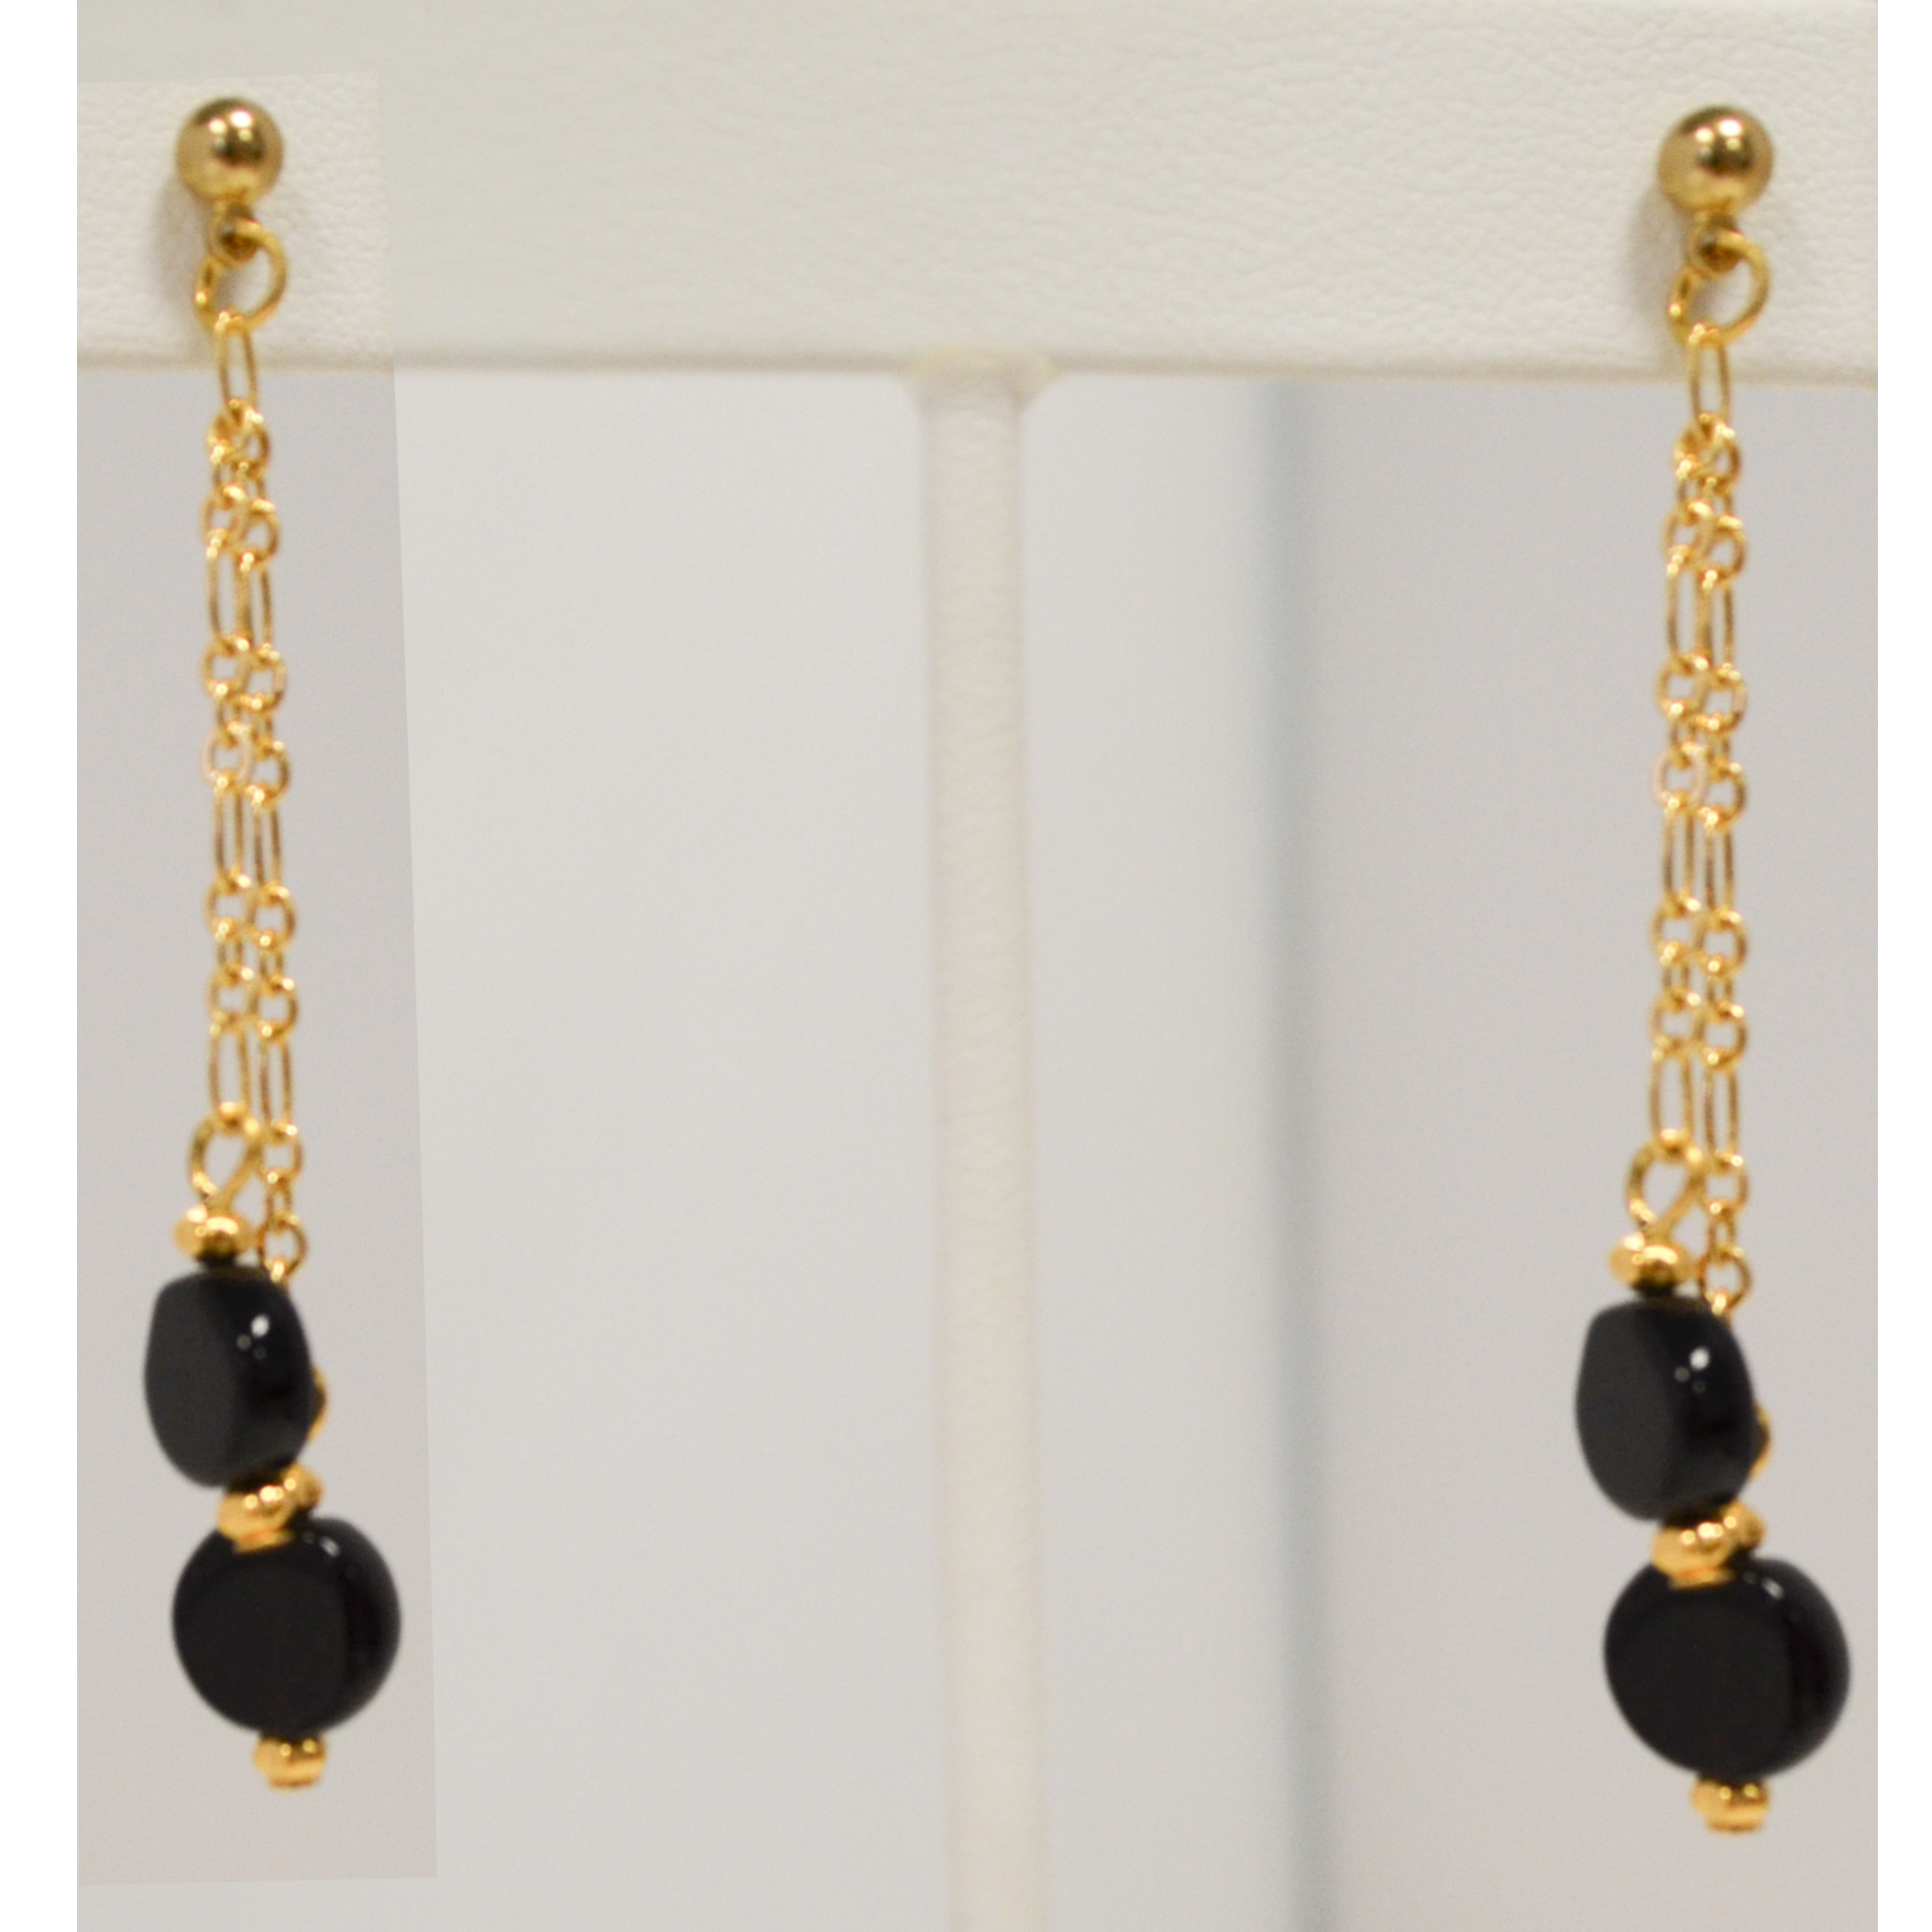 Black circle earrings by Judy Phillips